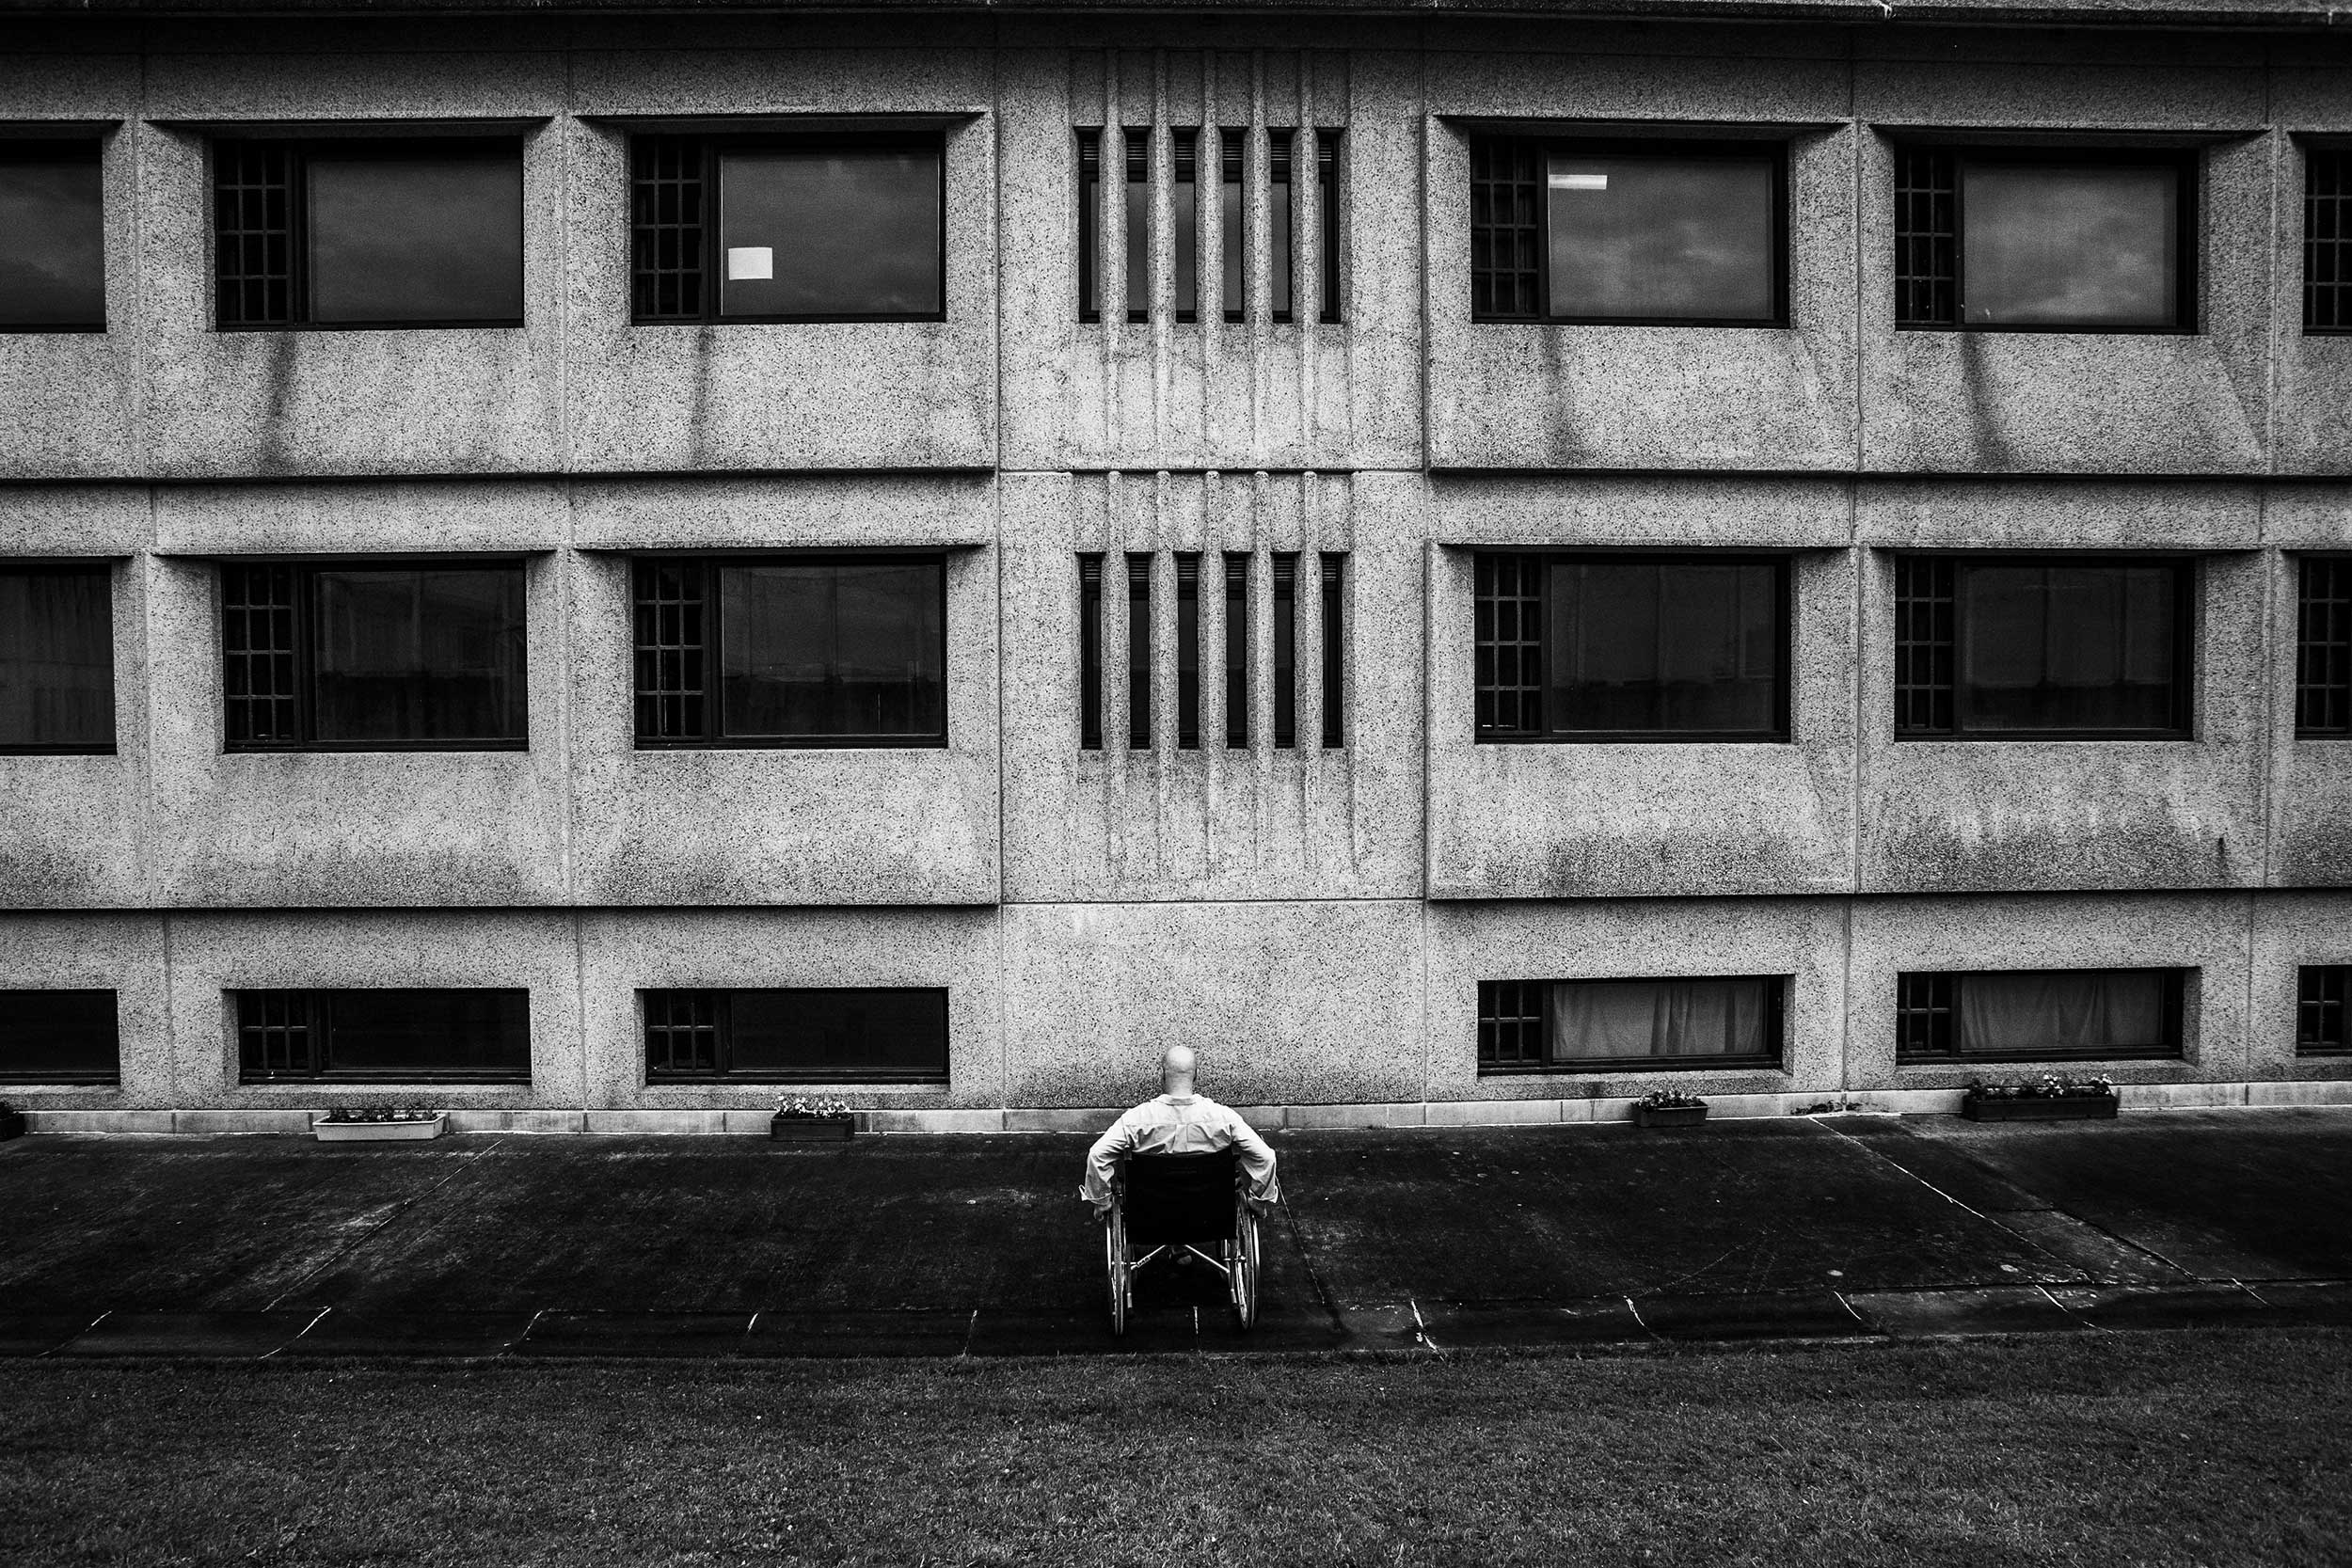 A patient in Paifve, Liège, Belgium. Due to their mental illnesses, prisoners in Paifve are called patients. July 2011.